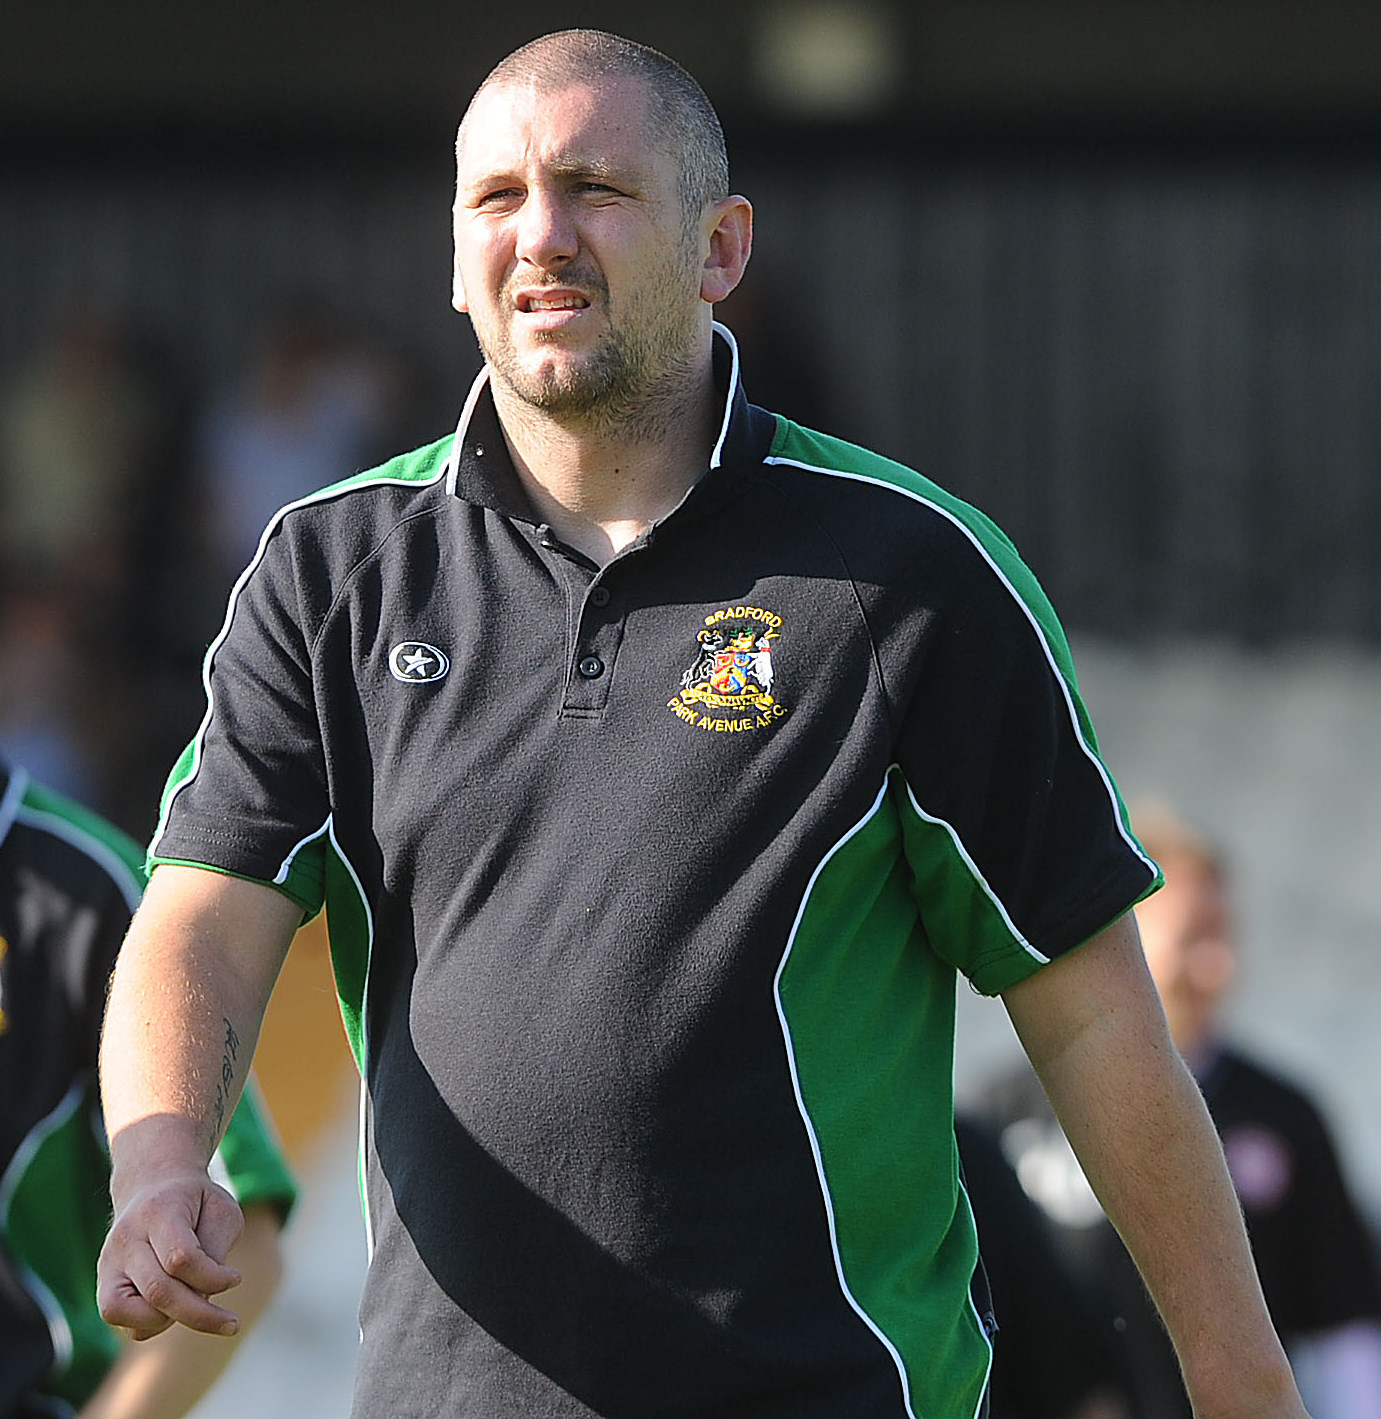 Dave Cameron has left Horsfall with immediate effect